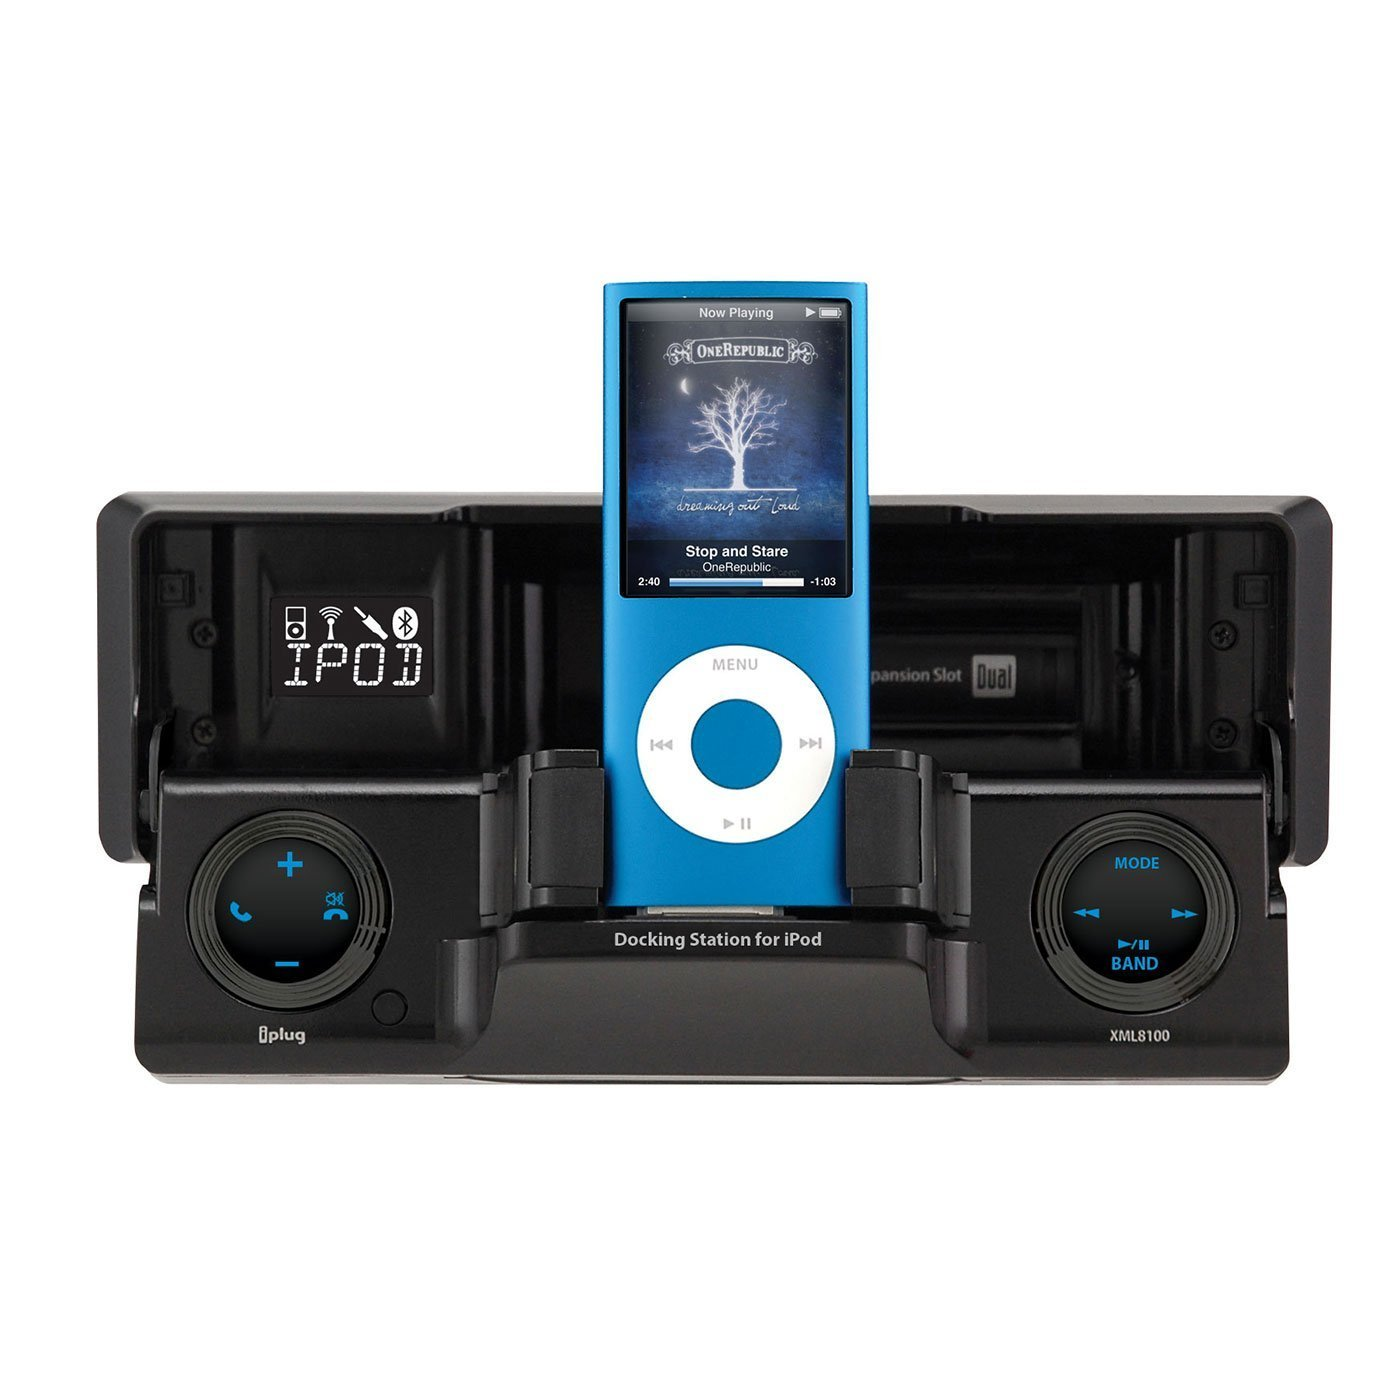 XML8110�Dual XML8110 In-Dash Radio Receiver with iPod Docking Station